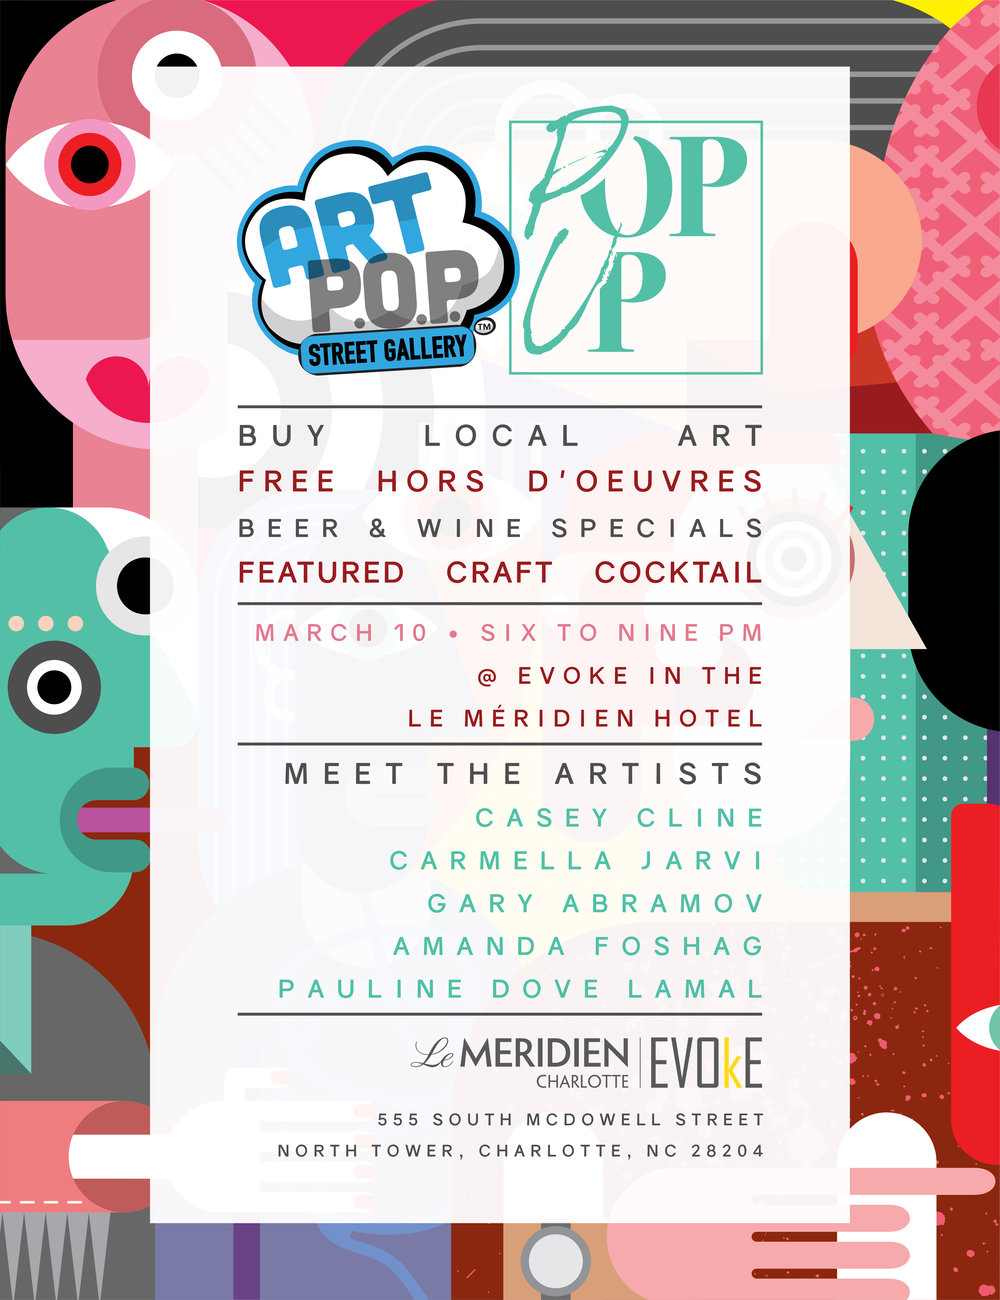 ARTPOP_Feb18_DigitalFlyer2(F).jpg